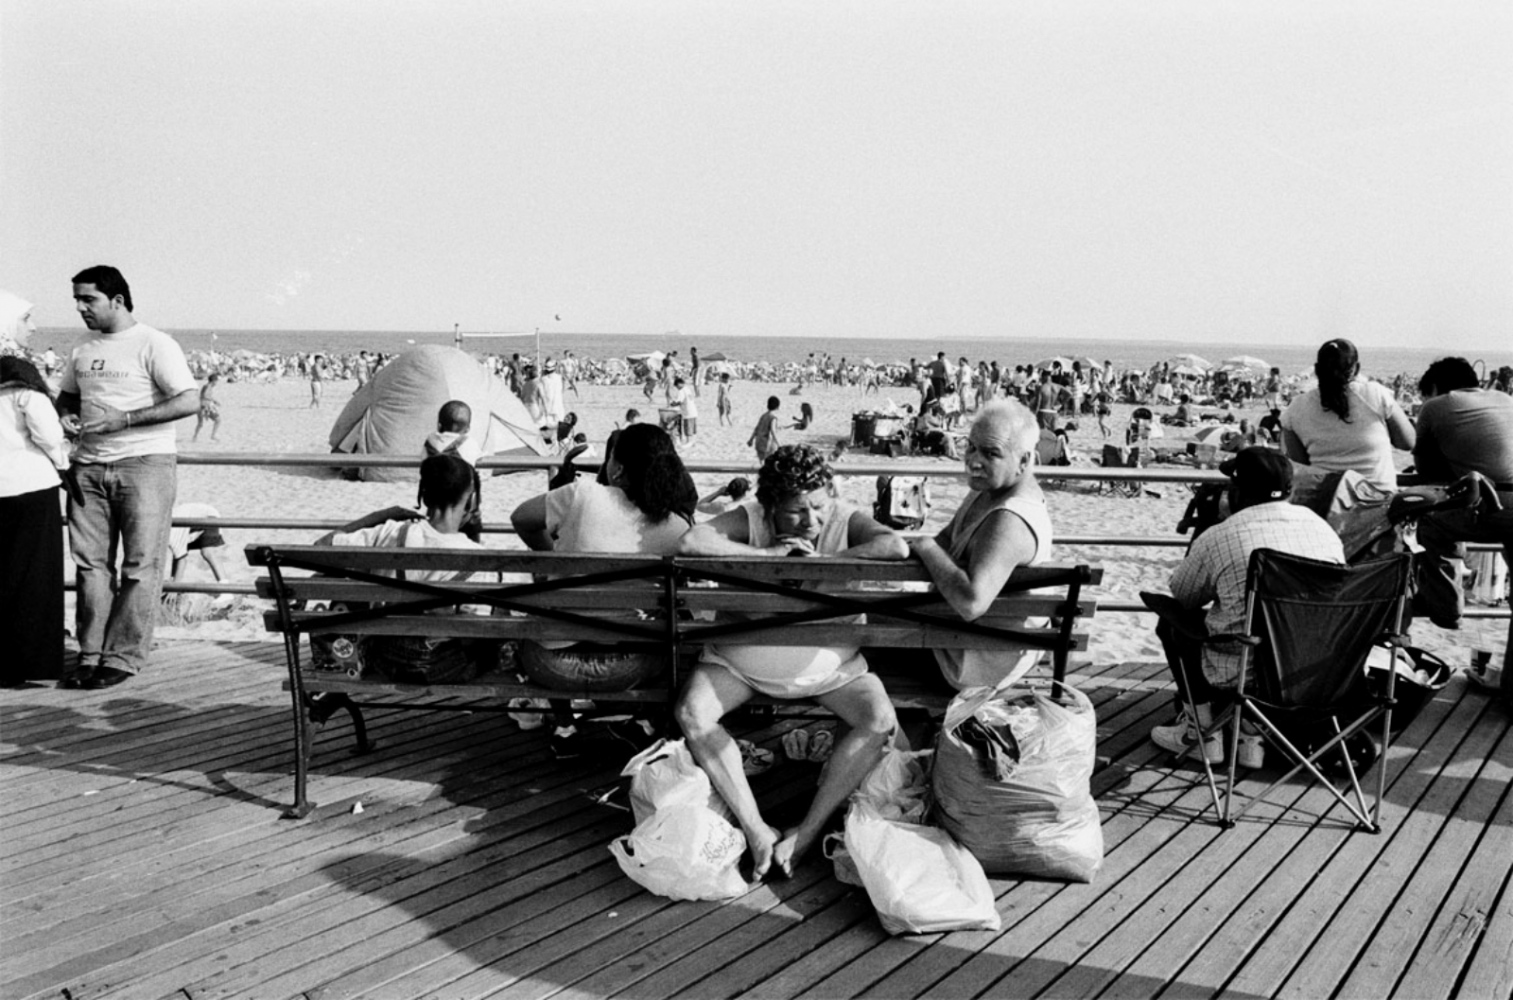 Curlers at the Beach, Coney Island, NY, July 4, 2004